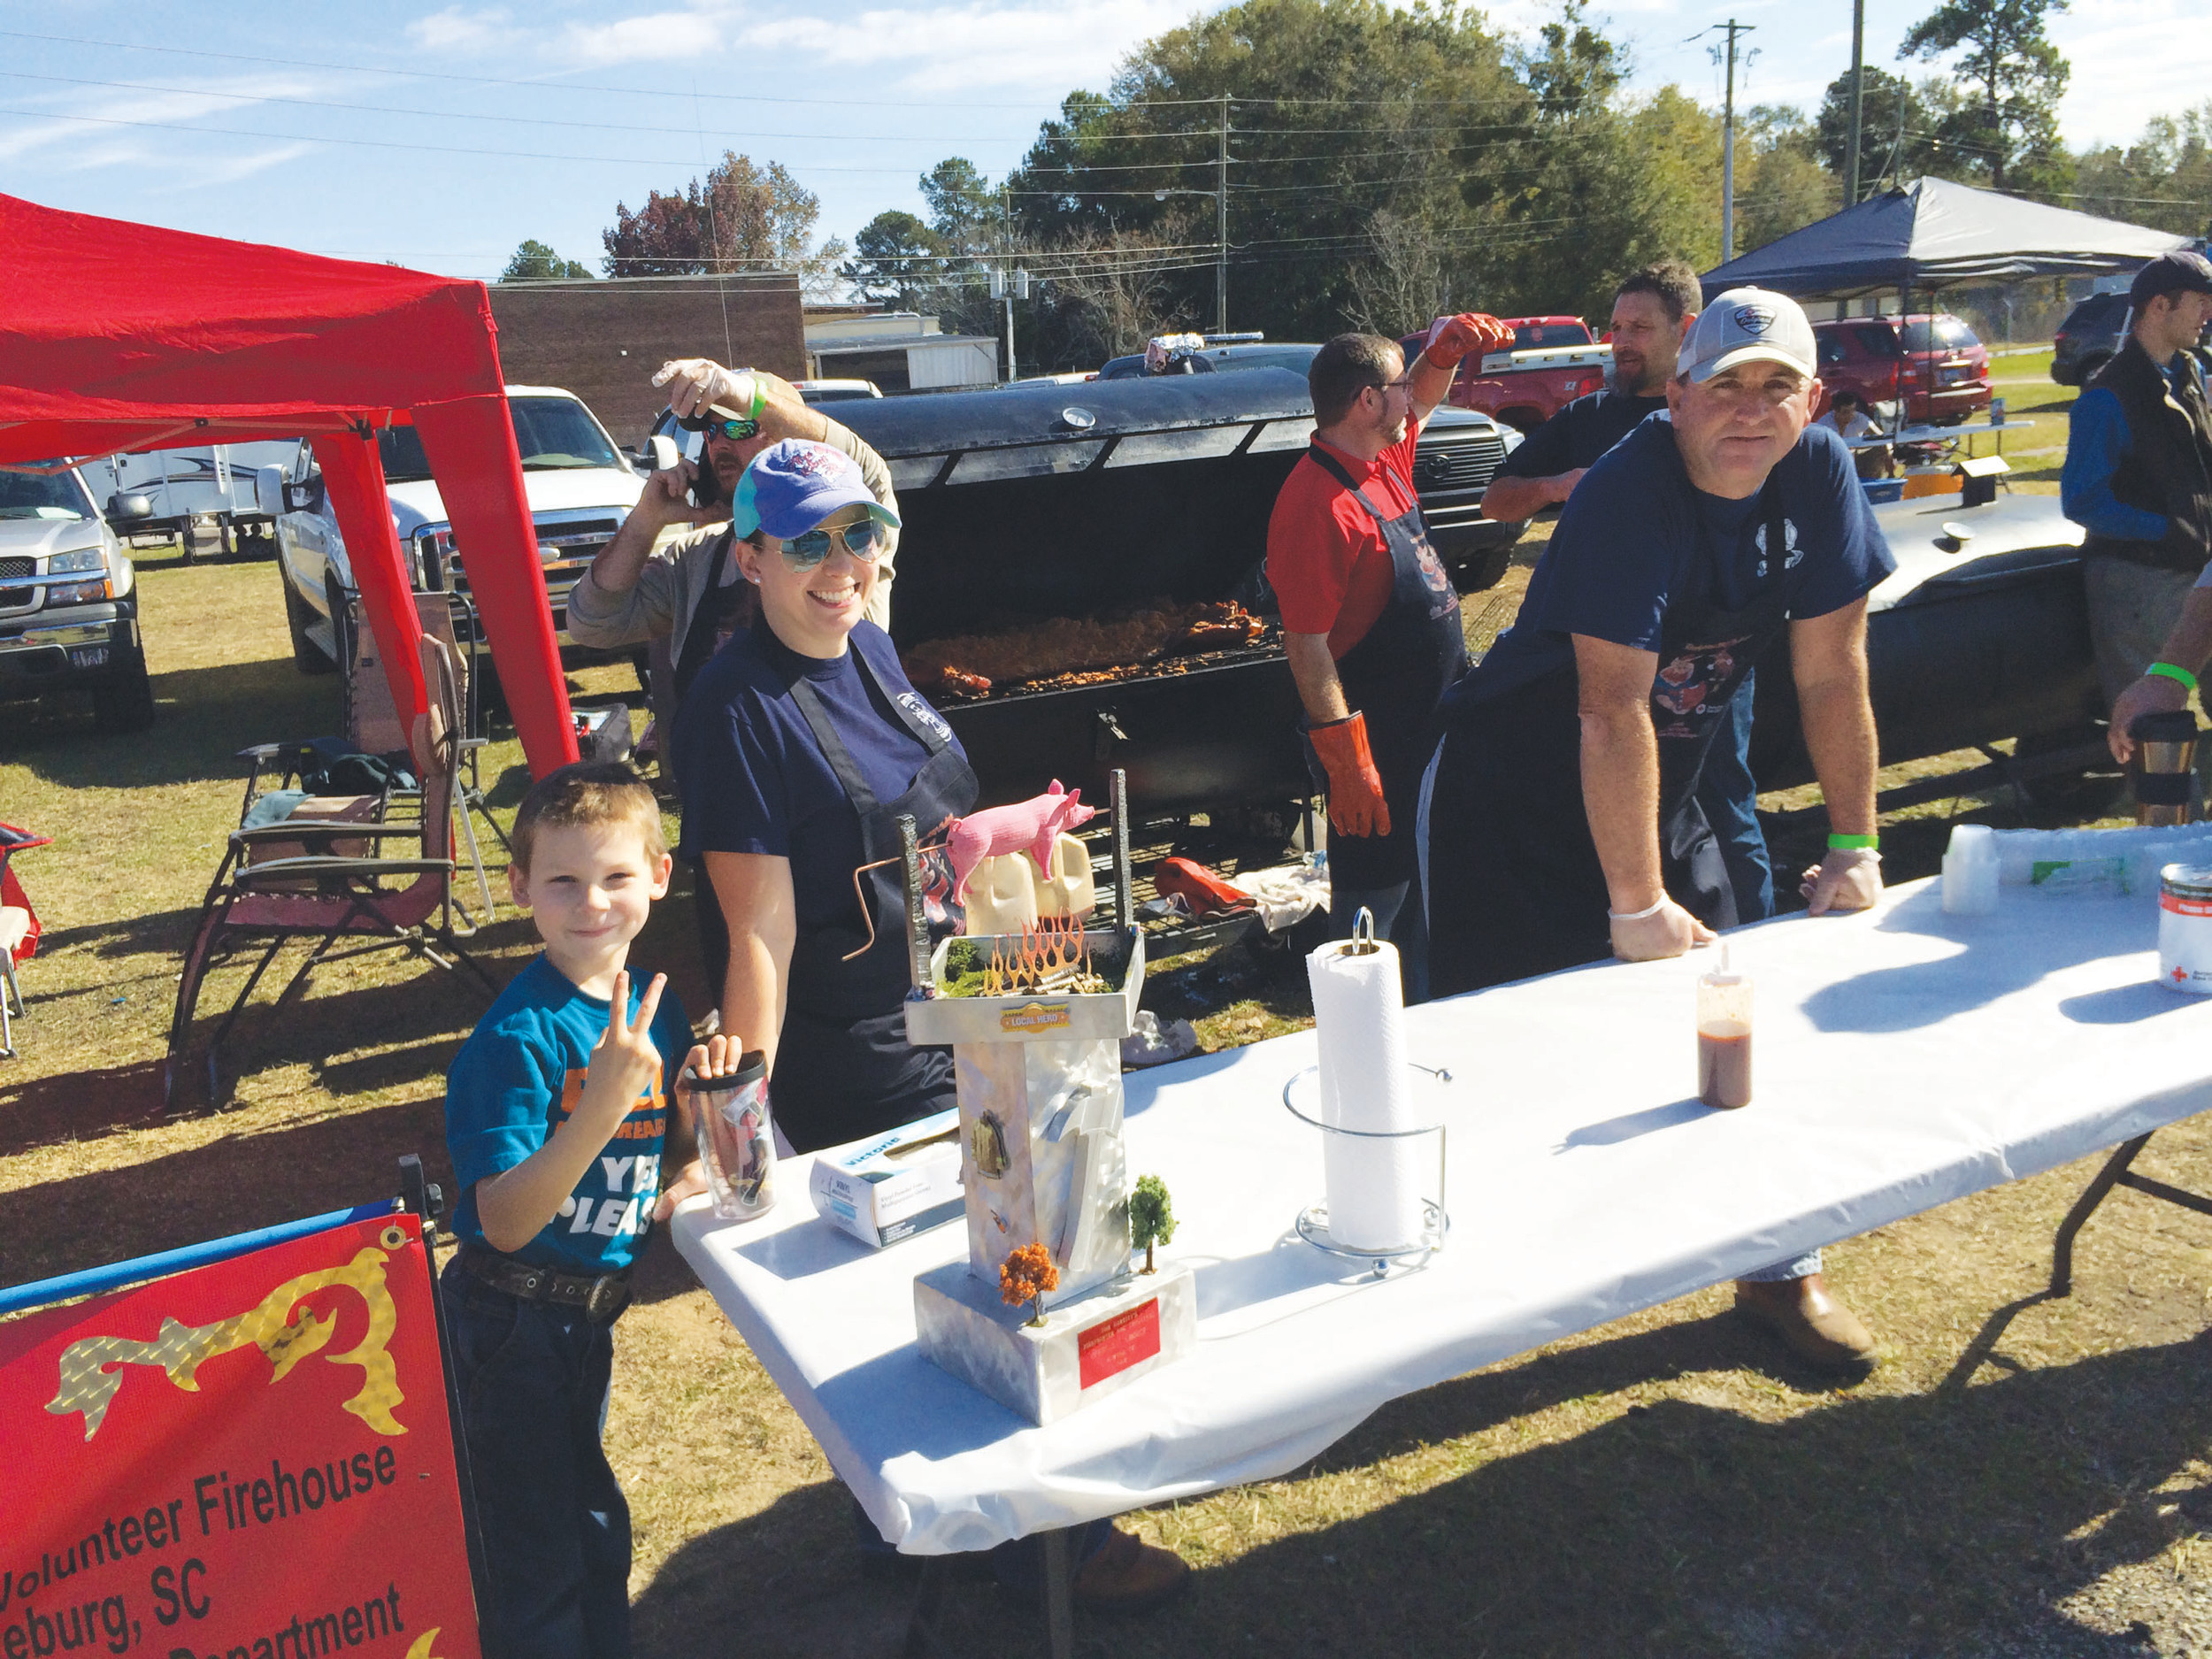 Wyatt Bunyea, 7, has a little fun with his mother, Callie, at Saturday's eighth-annual Capt. Tom Garrity Firefighter BBQ Challenge. Callie said she and her husband, Capt. Aaron Bunyea of Beech Creek FD Station, had been up all night cooking their barbecue for the competition.  Firefighters from 11 stations across South Carolina, Georgia and North Carolina participated in the fundraiser for the Red Cross.